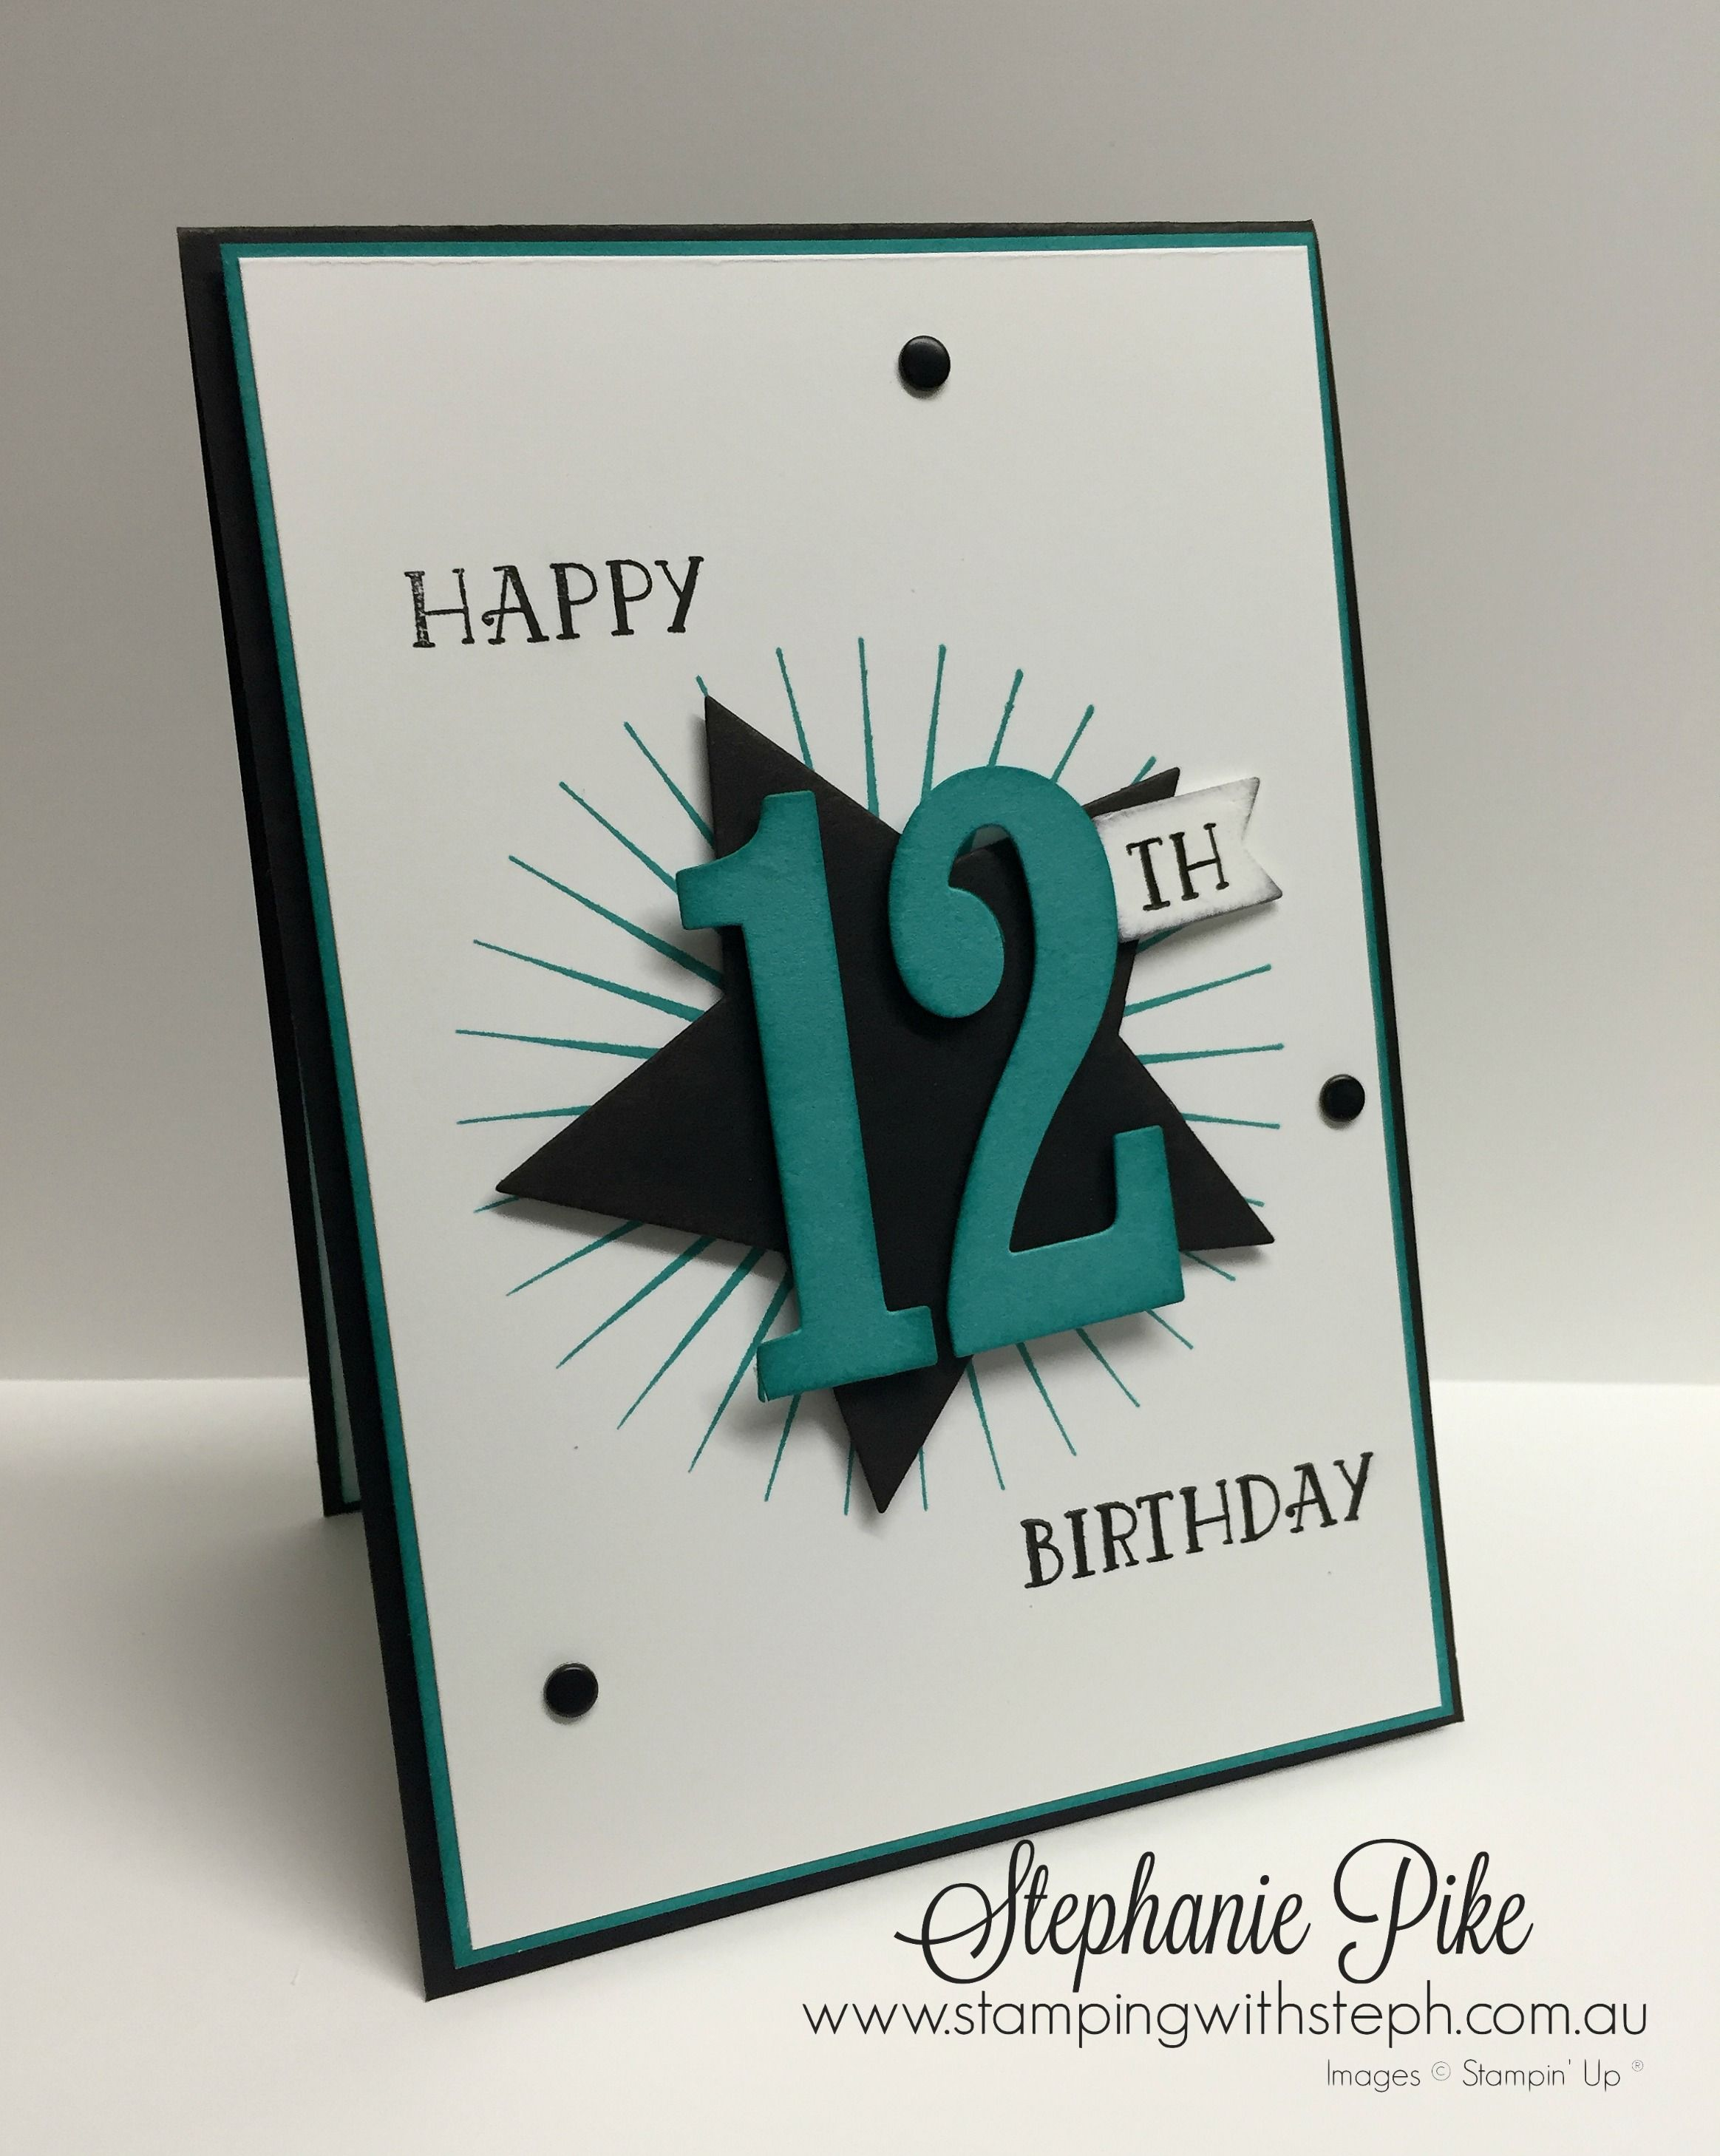 Pin By Debbie Mcsparran On Cards 17 Pinterest Cards Kids Cards